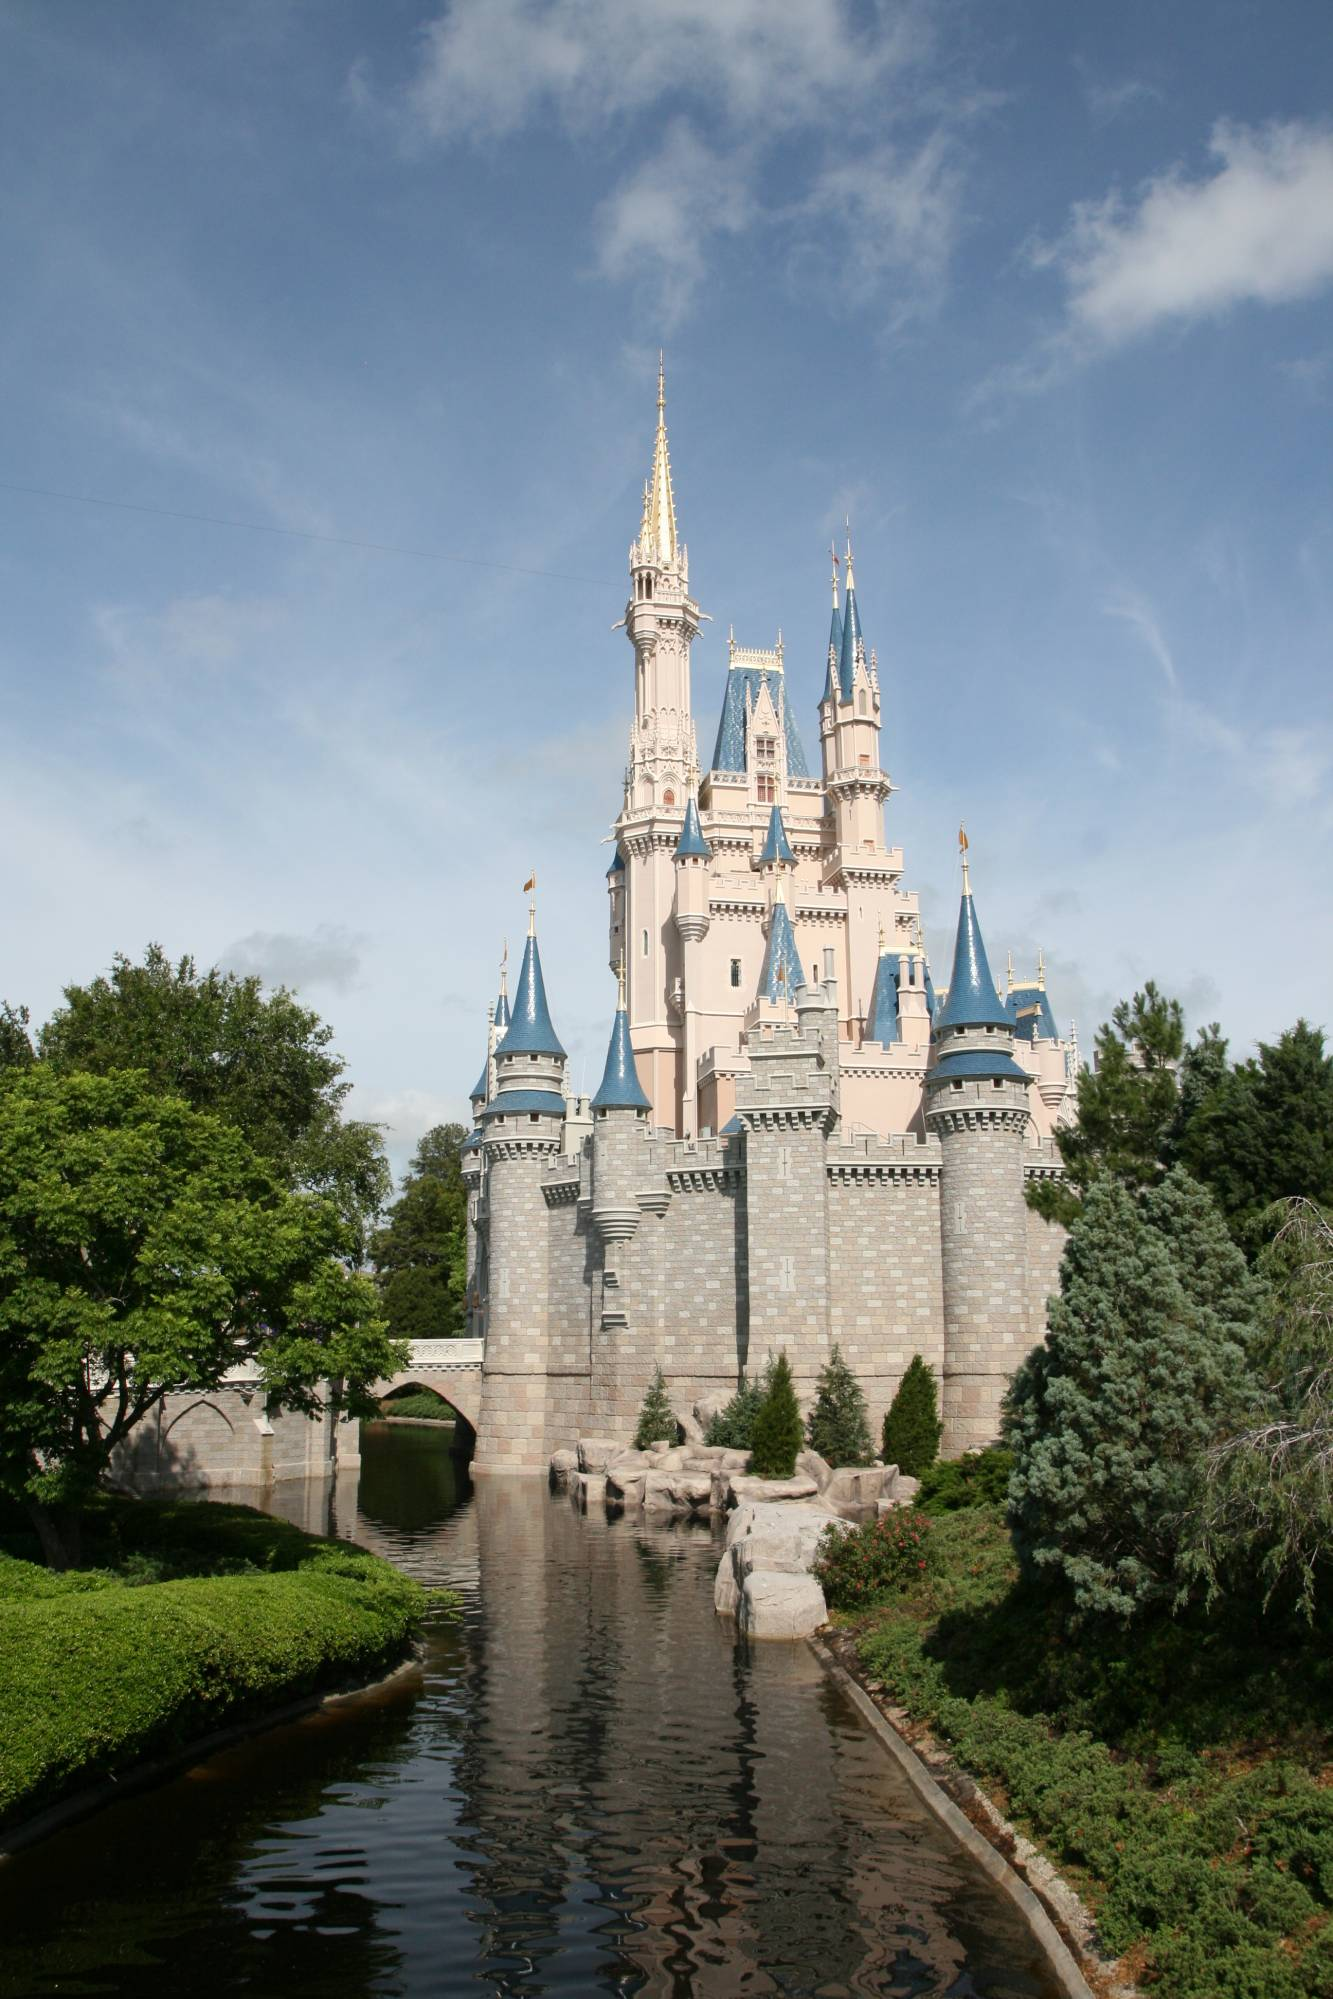 Already a Disneyland expert? Get help planning a trip to Walt Disney World! | PassPorter.com